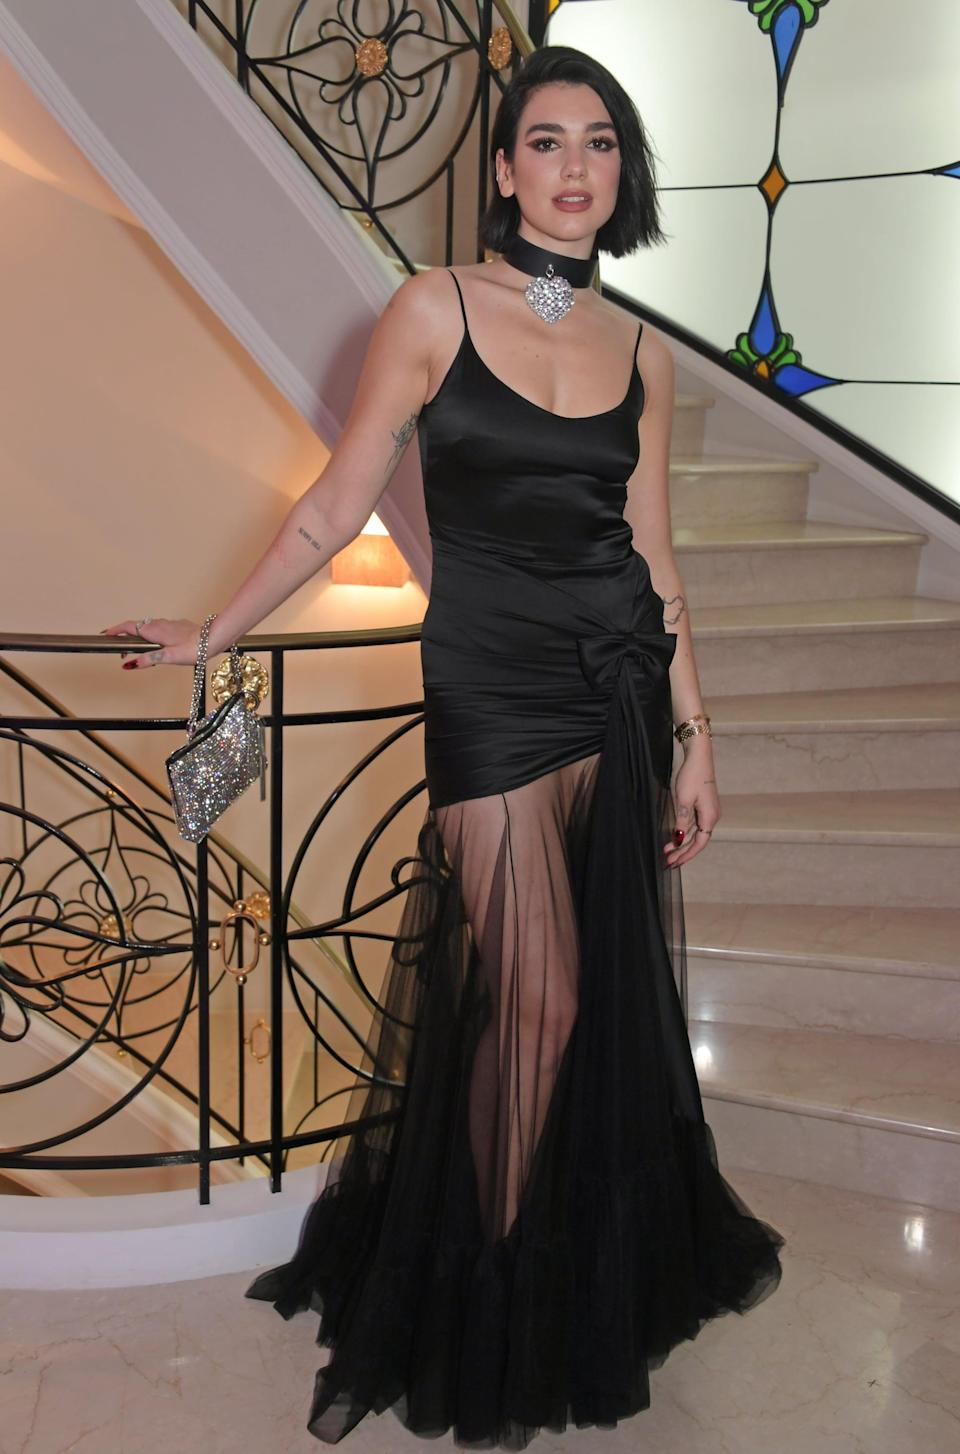 <p>Wearing a black minidress with a sheer skirt at the 2019 Cannes Film Festival.</p>